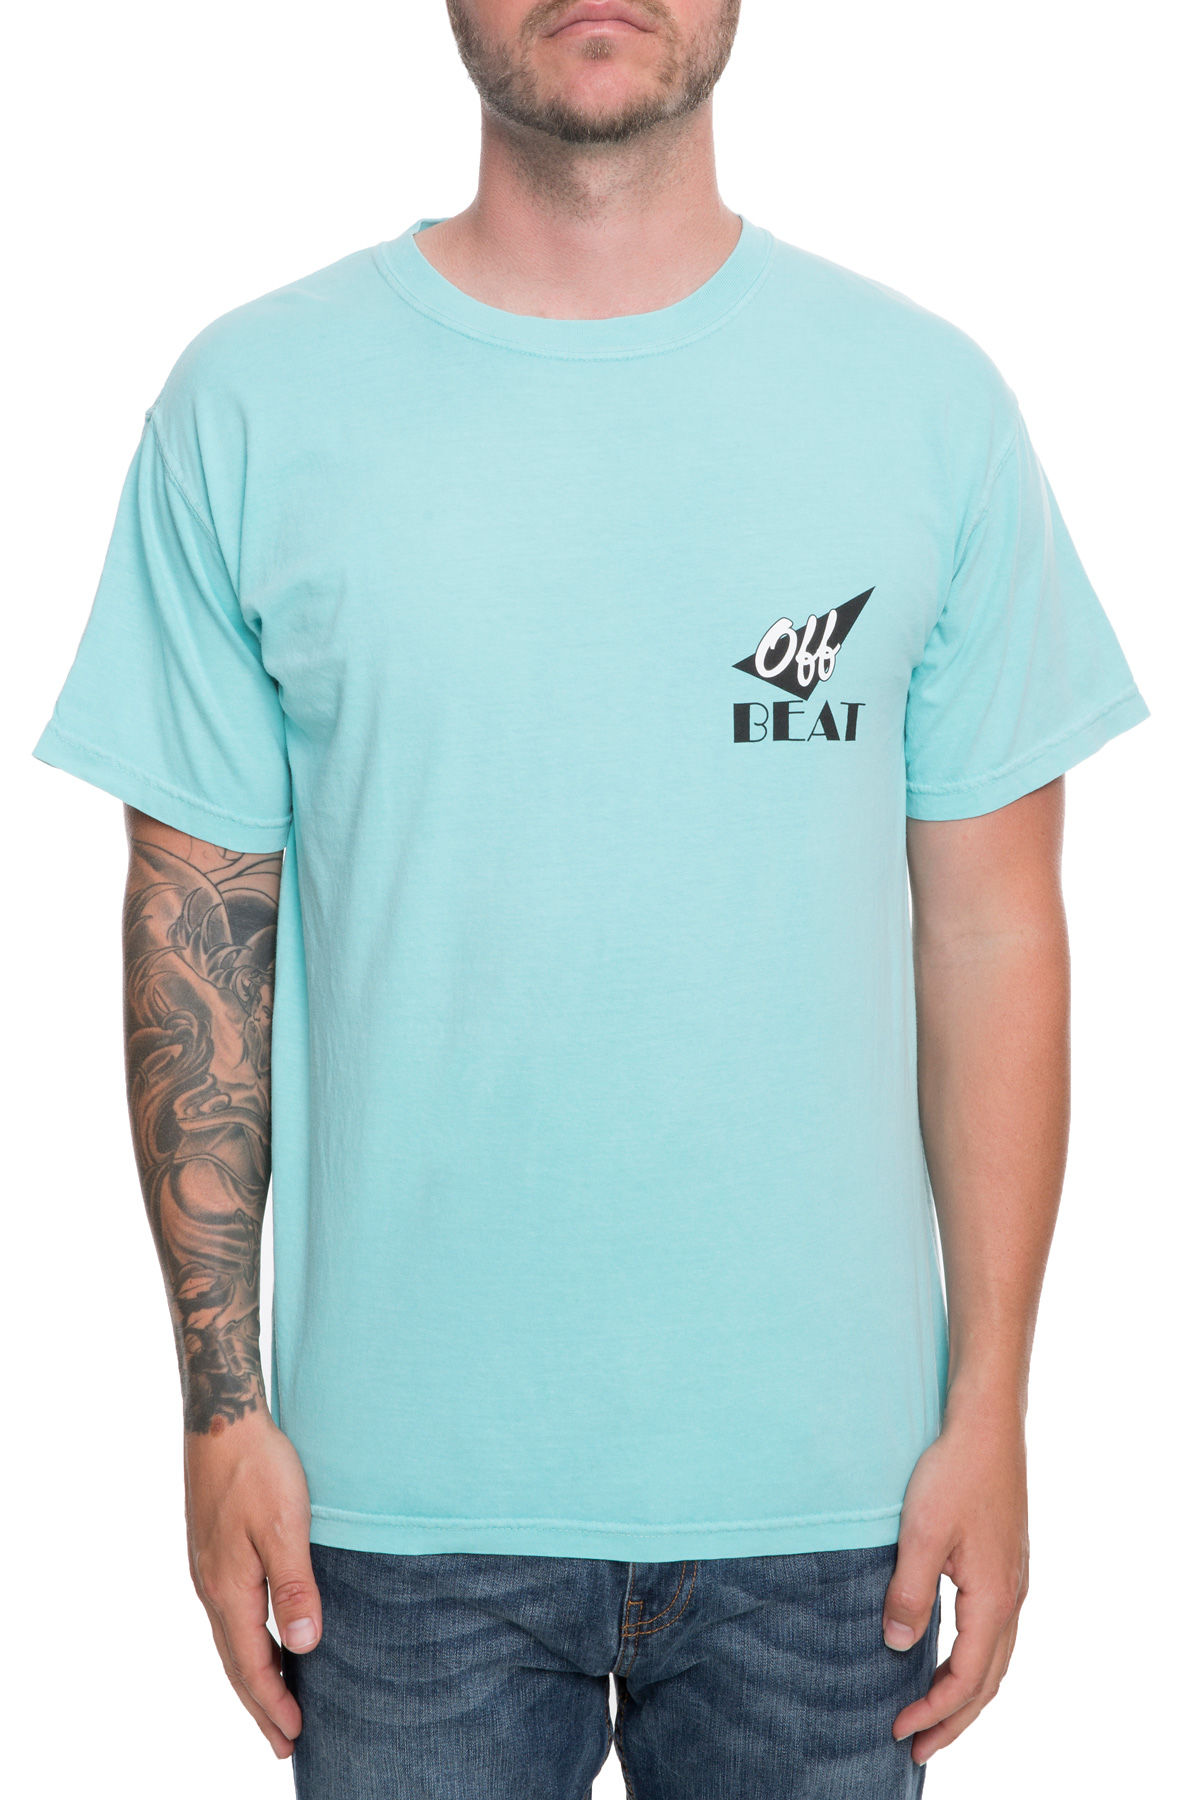 Image of The Off Beat Tee in Chalky Mint